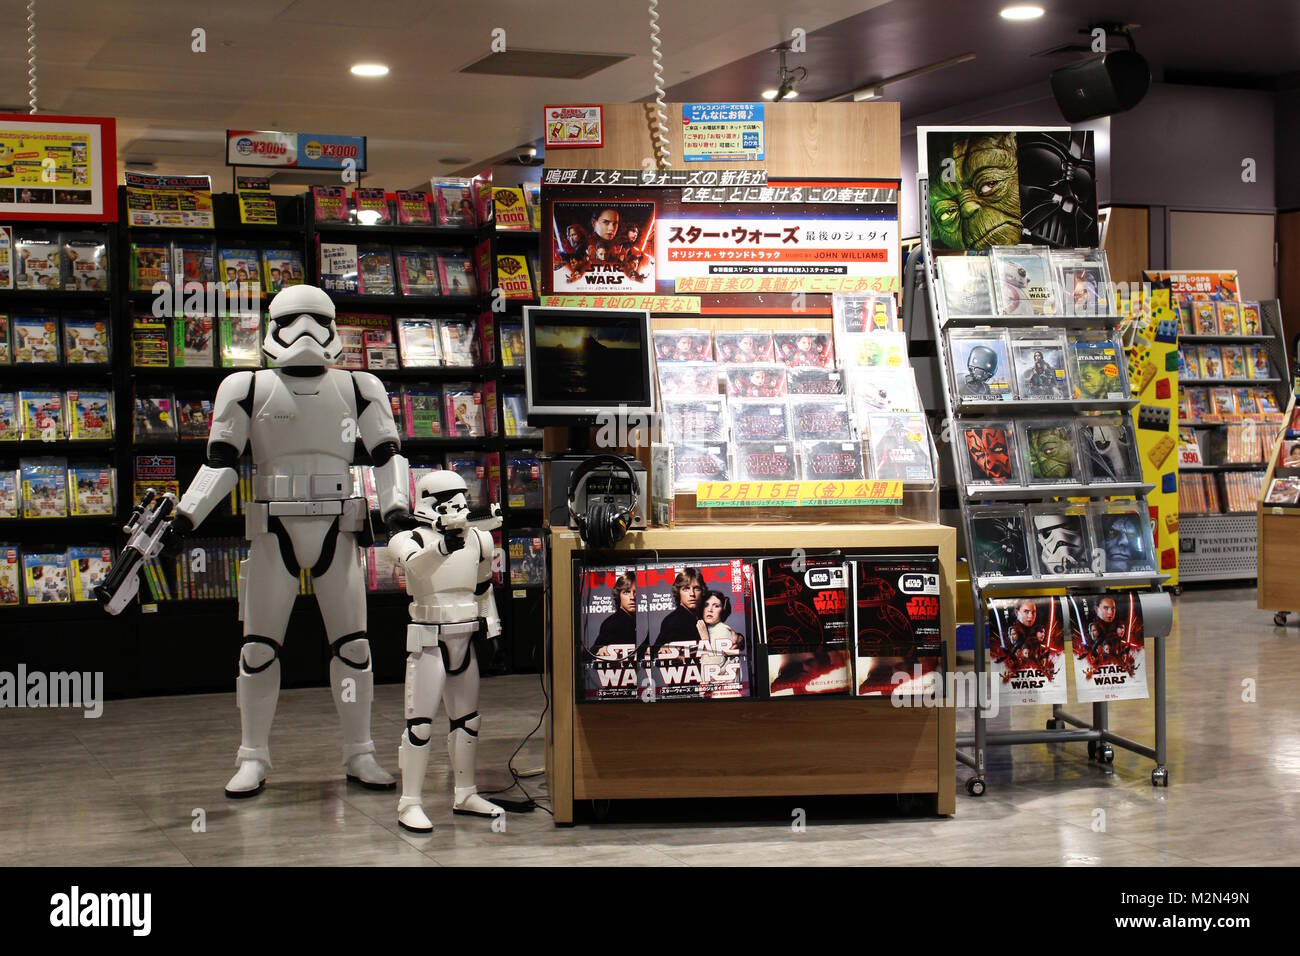 A display of CDs, DVDs, and magazines related to Star Wars